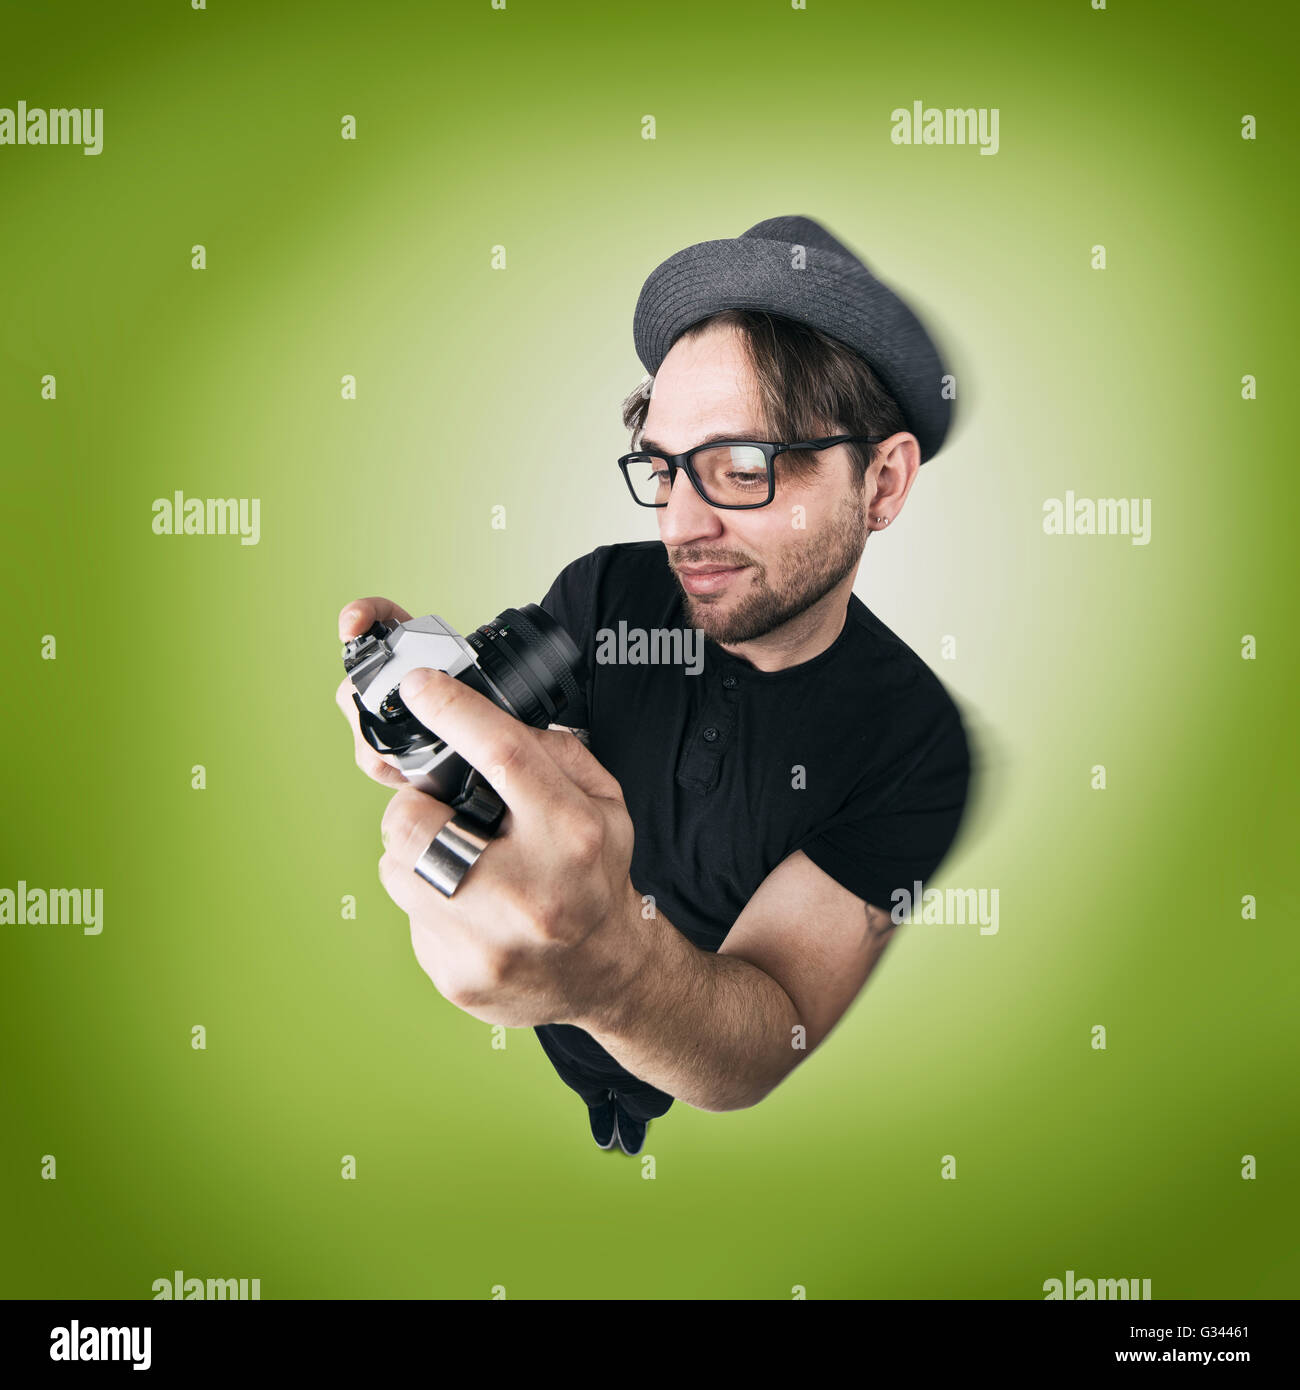 Funny Man with hat and photocamera selfie laugh looks like caricature of himself - Stock Image